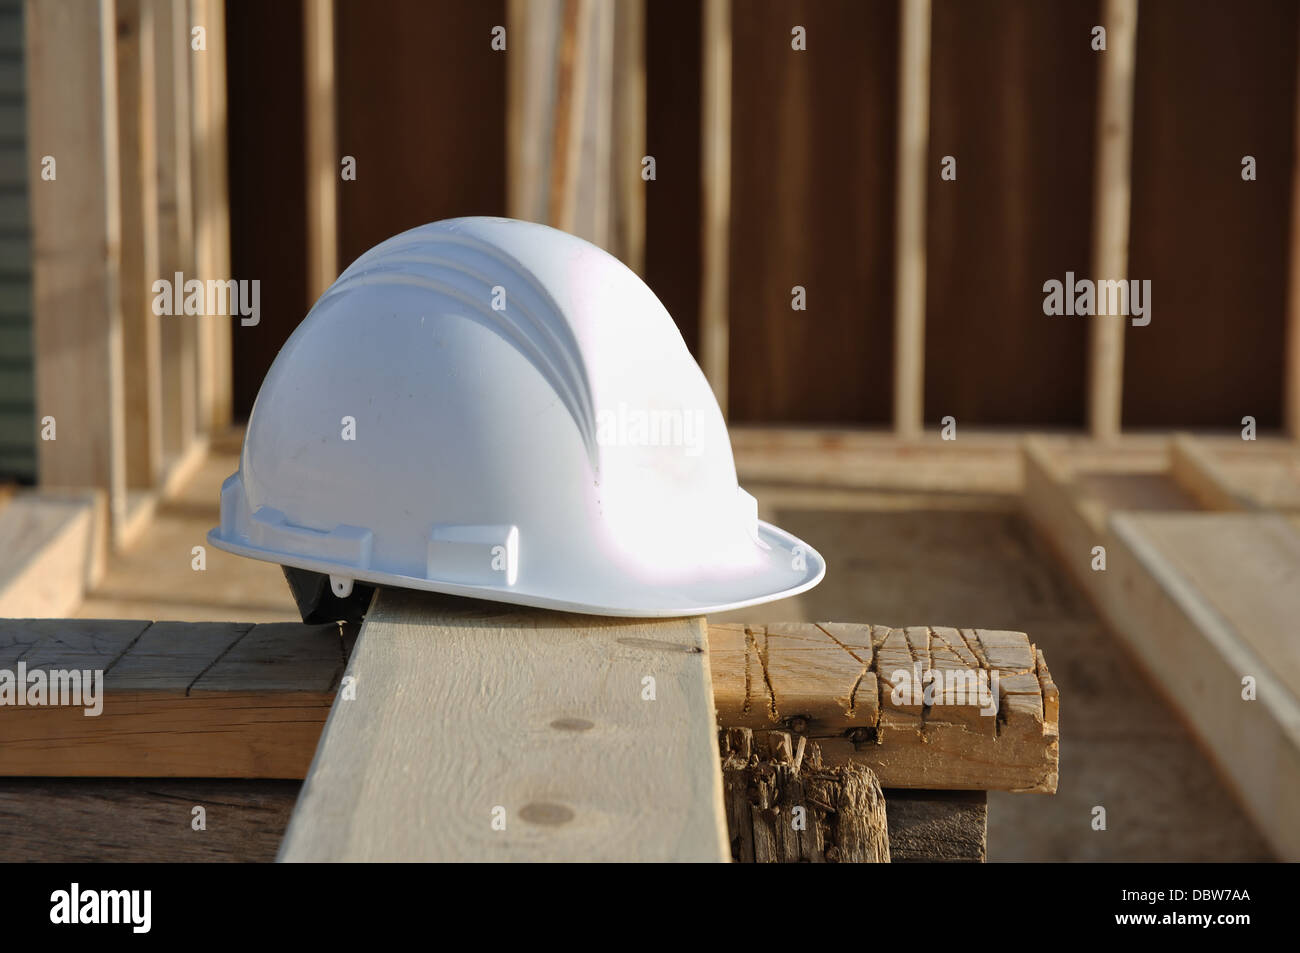 Hard hat safety helmet on a construction site, building site - Stock Image